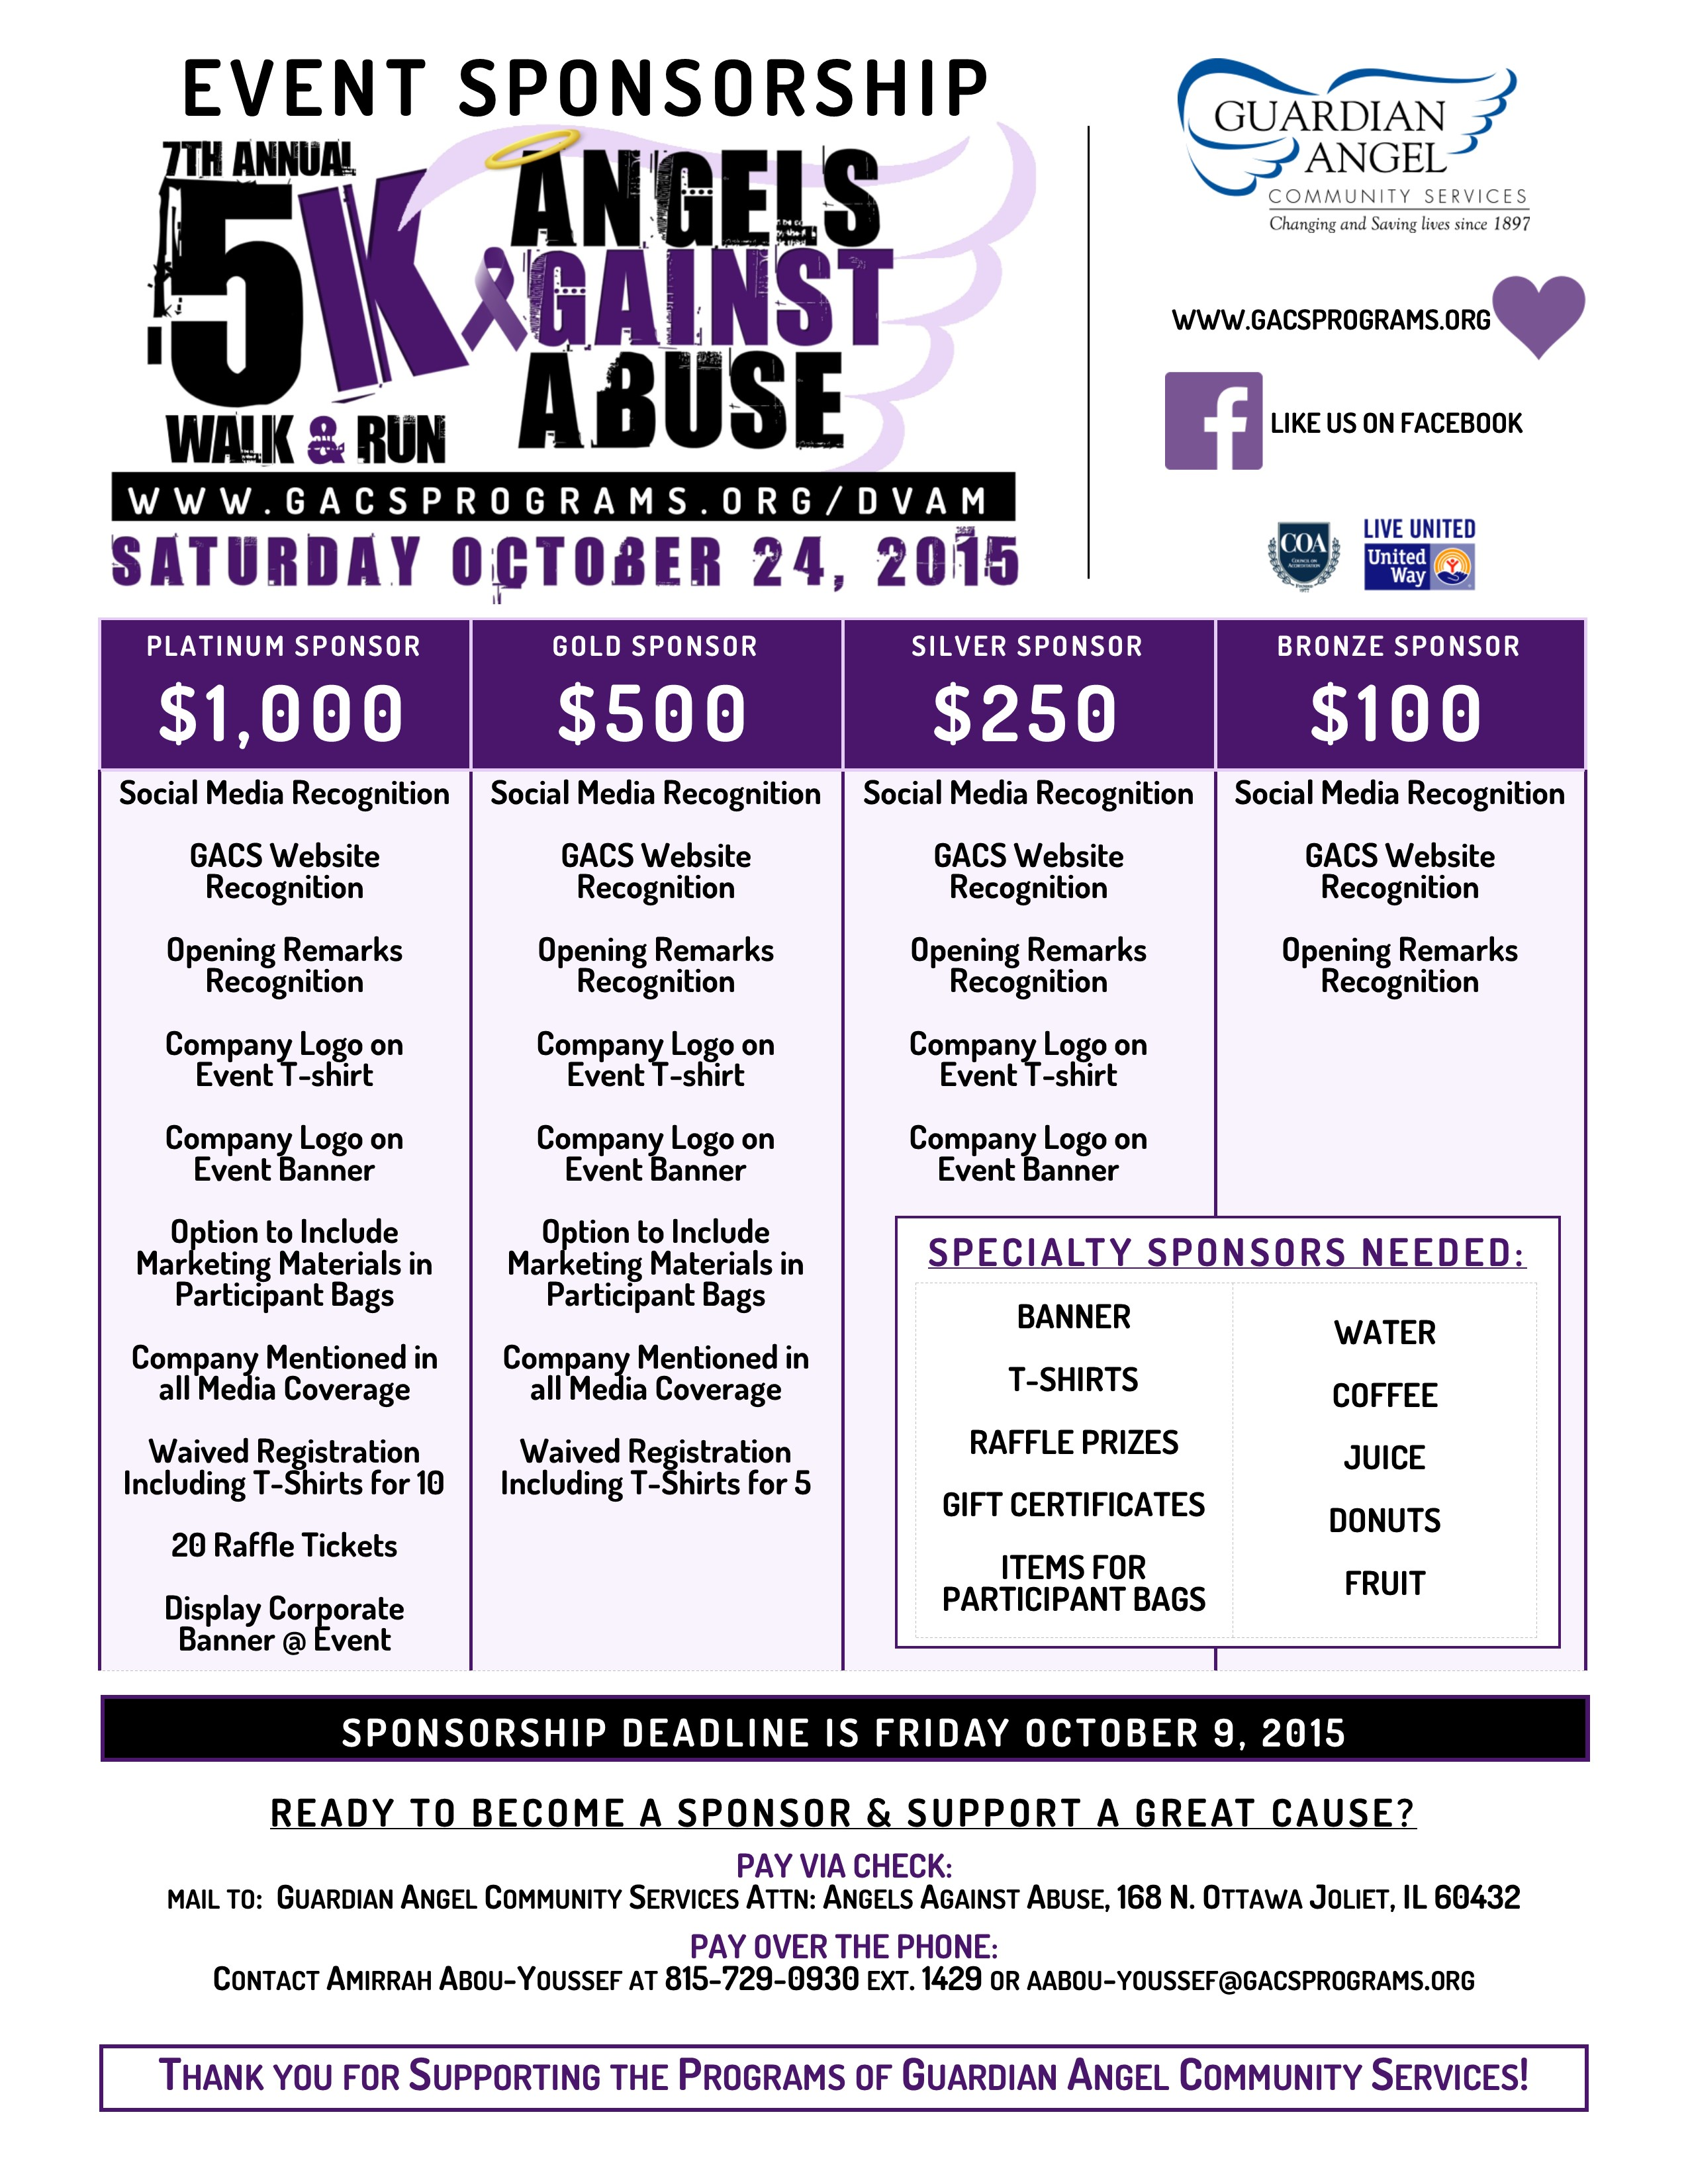 FirstGiving Angels Against Abuse 5K Walk Run Benefiting – Generic Sponsorship Form